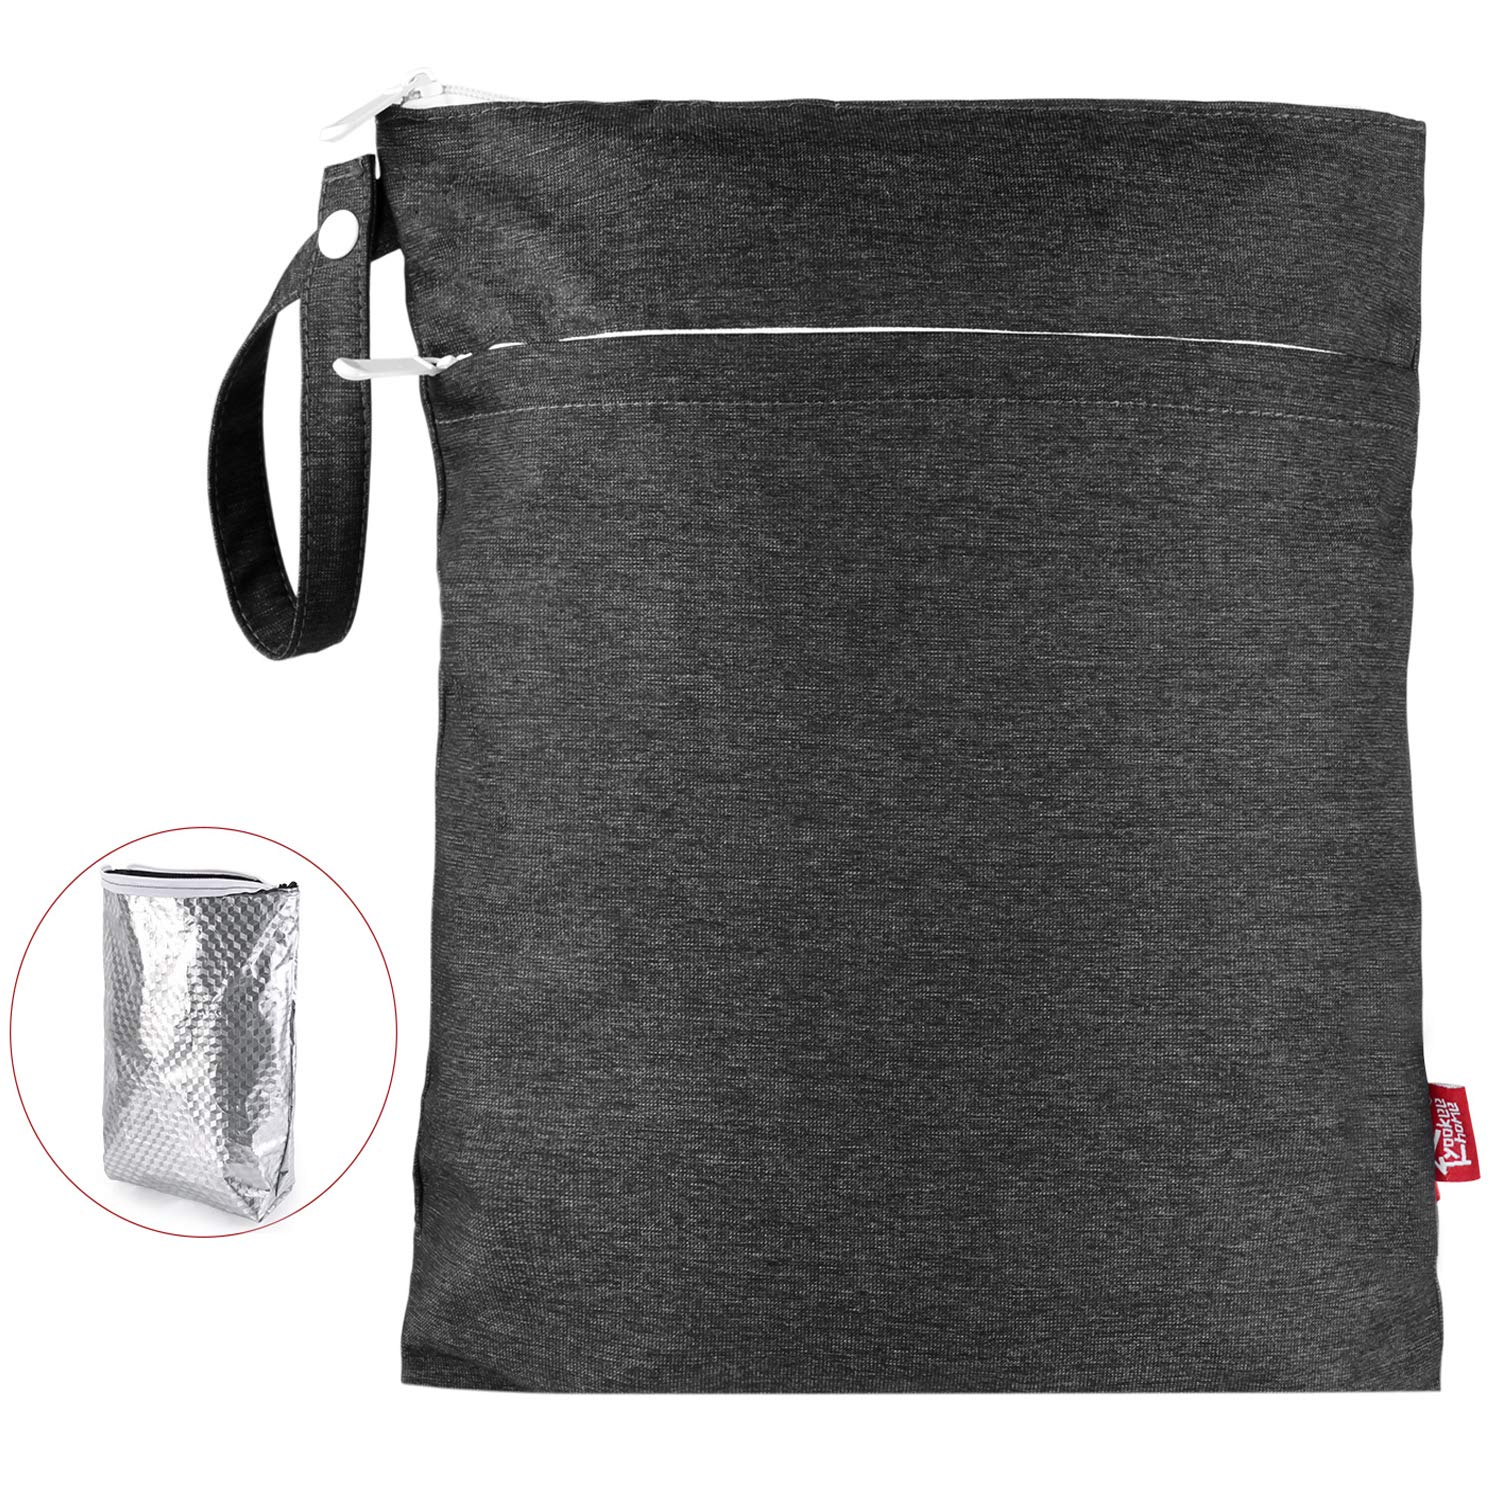 Waterproof Wet Dry Bag Double Layer Reusable Cloth Diaper Wet Bag with Waterproof Liner and Zippered Pocket for Diapers, Laundry, Swimsuits and Dirty Cloth